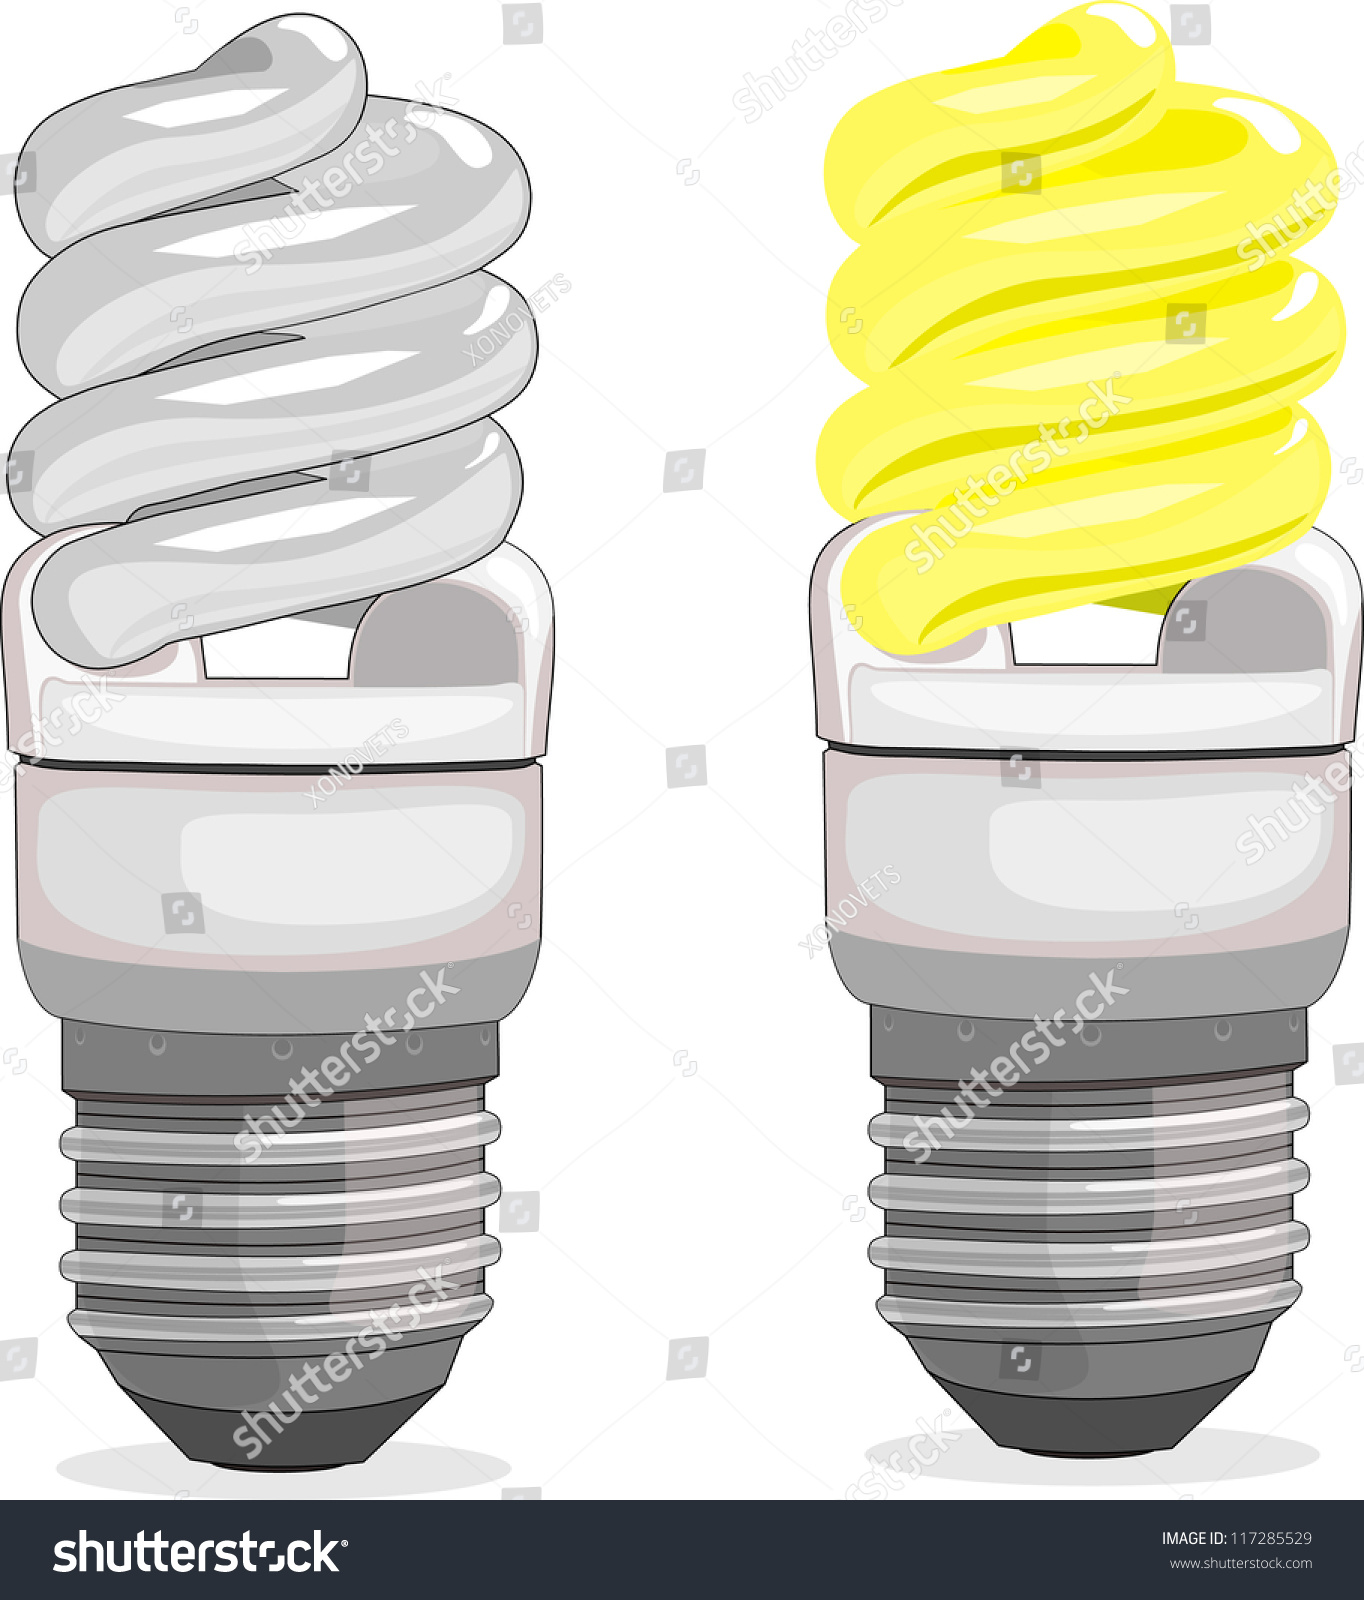 Fluorescent Light Goes On And Off: On, Off, Economical Fluorescent Light Bulb Stock Vector